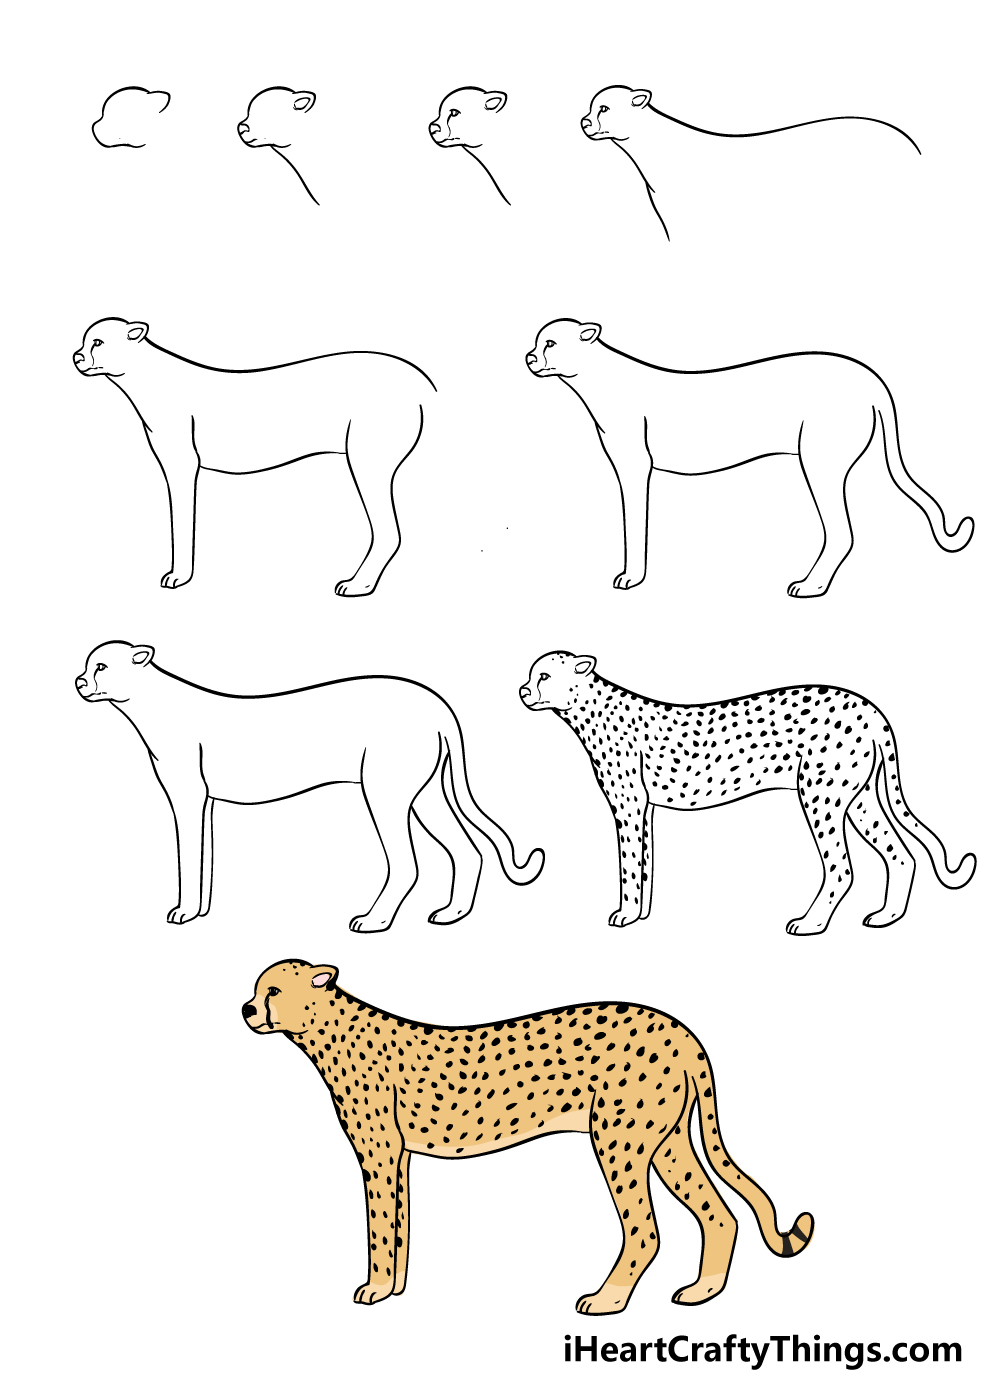 how to draw a cheetah in 9 steps